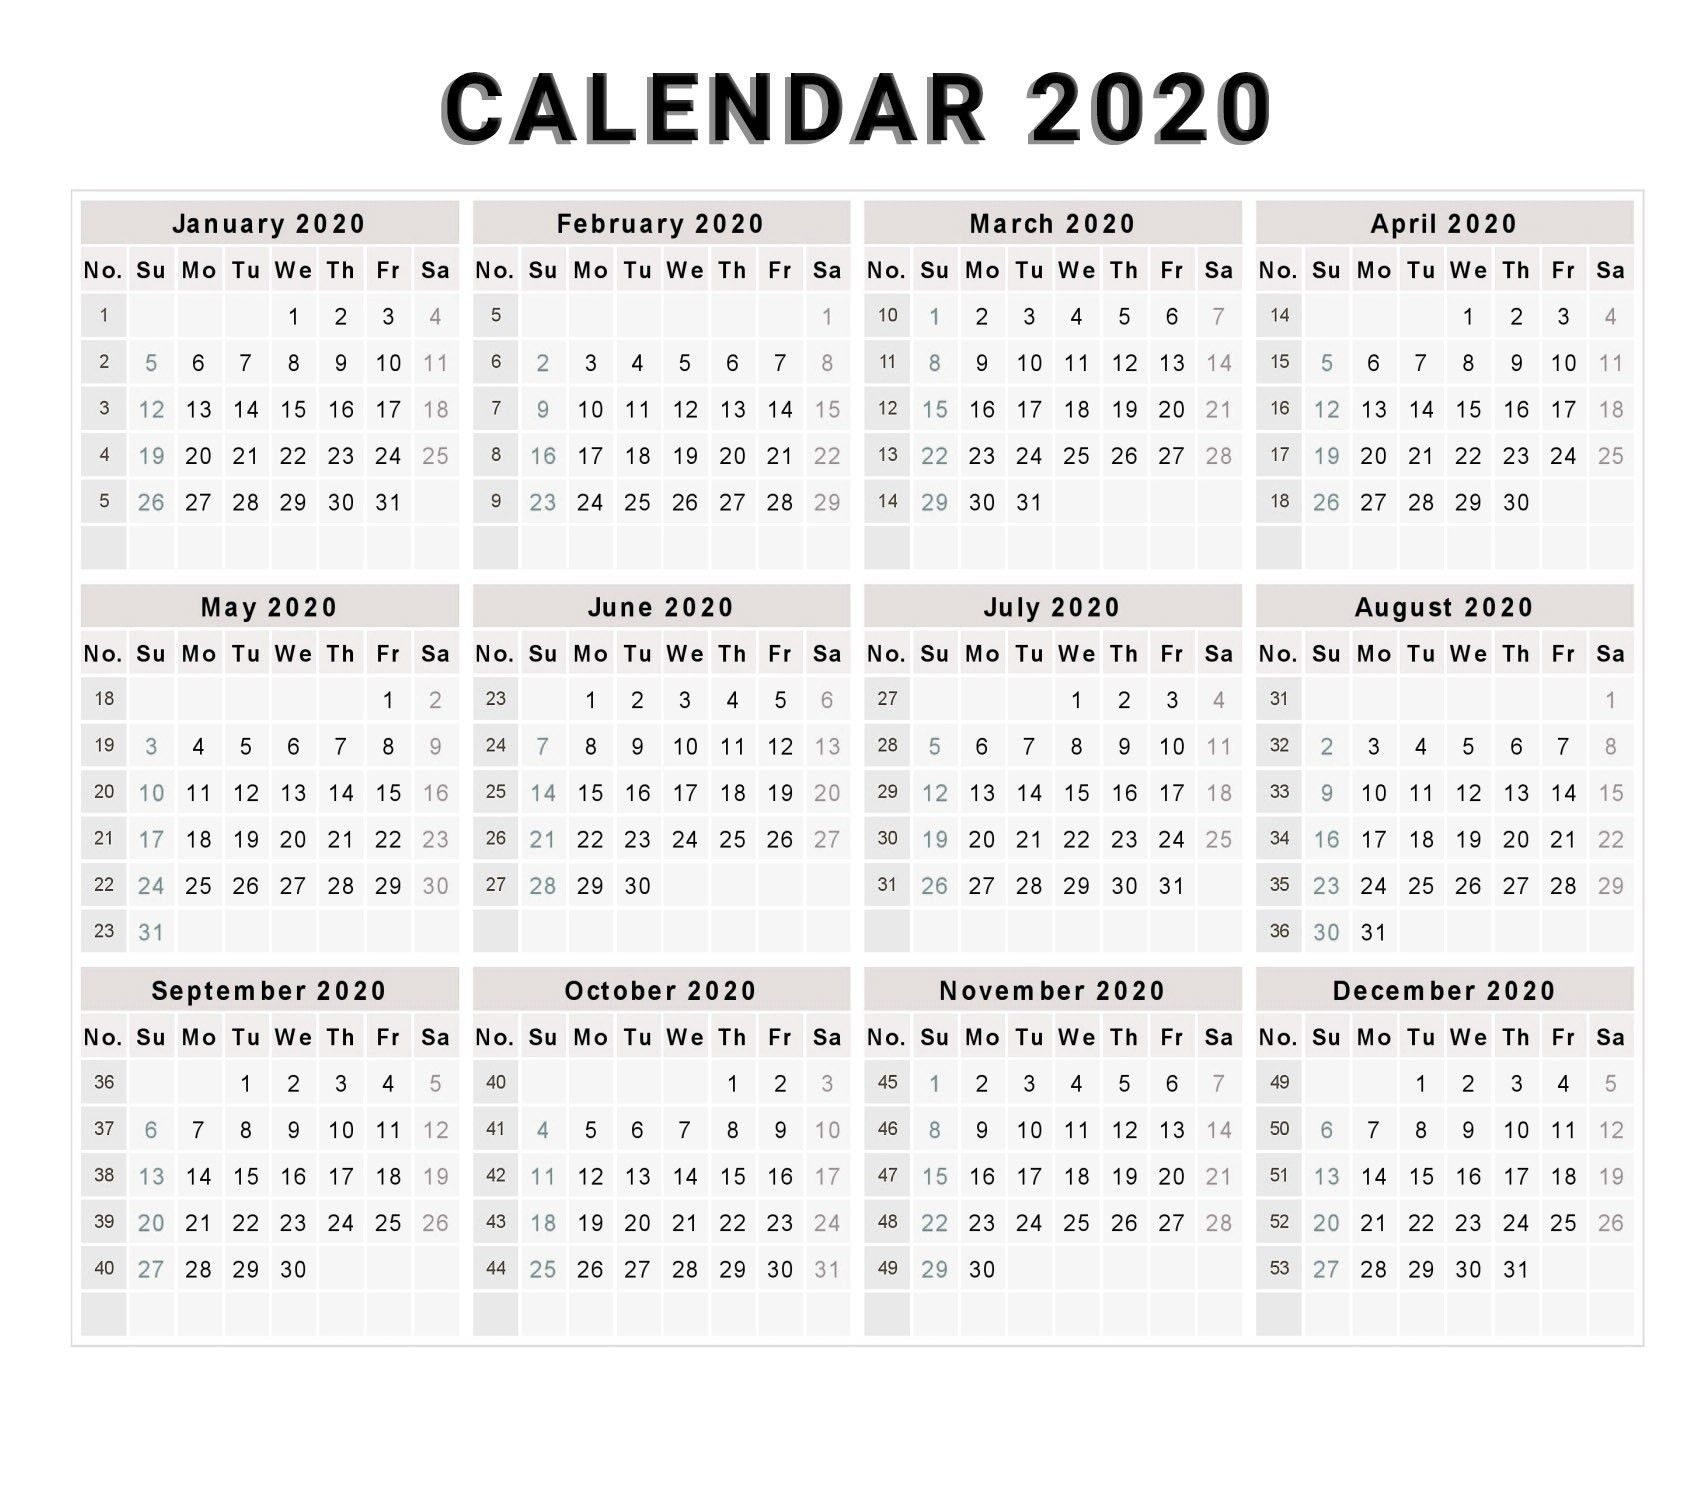 Calendar 2020 Free Printable Calendar 2020 Free 2020 in Print Free2020 Calendars Without Downloading